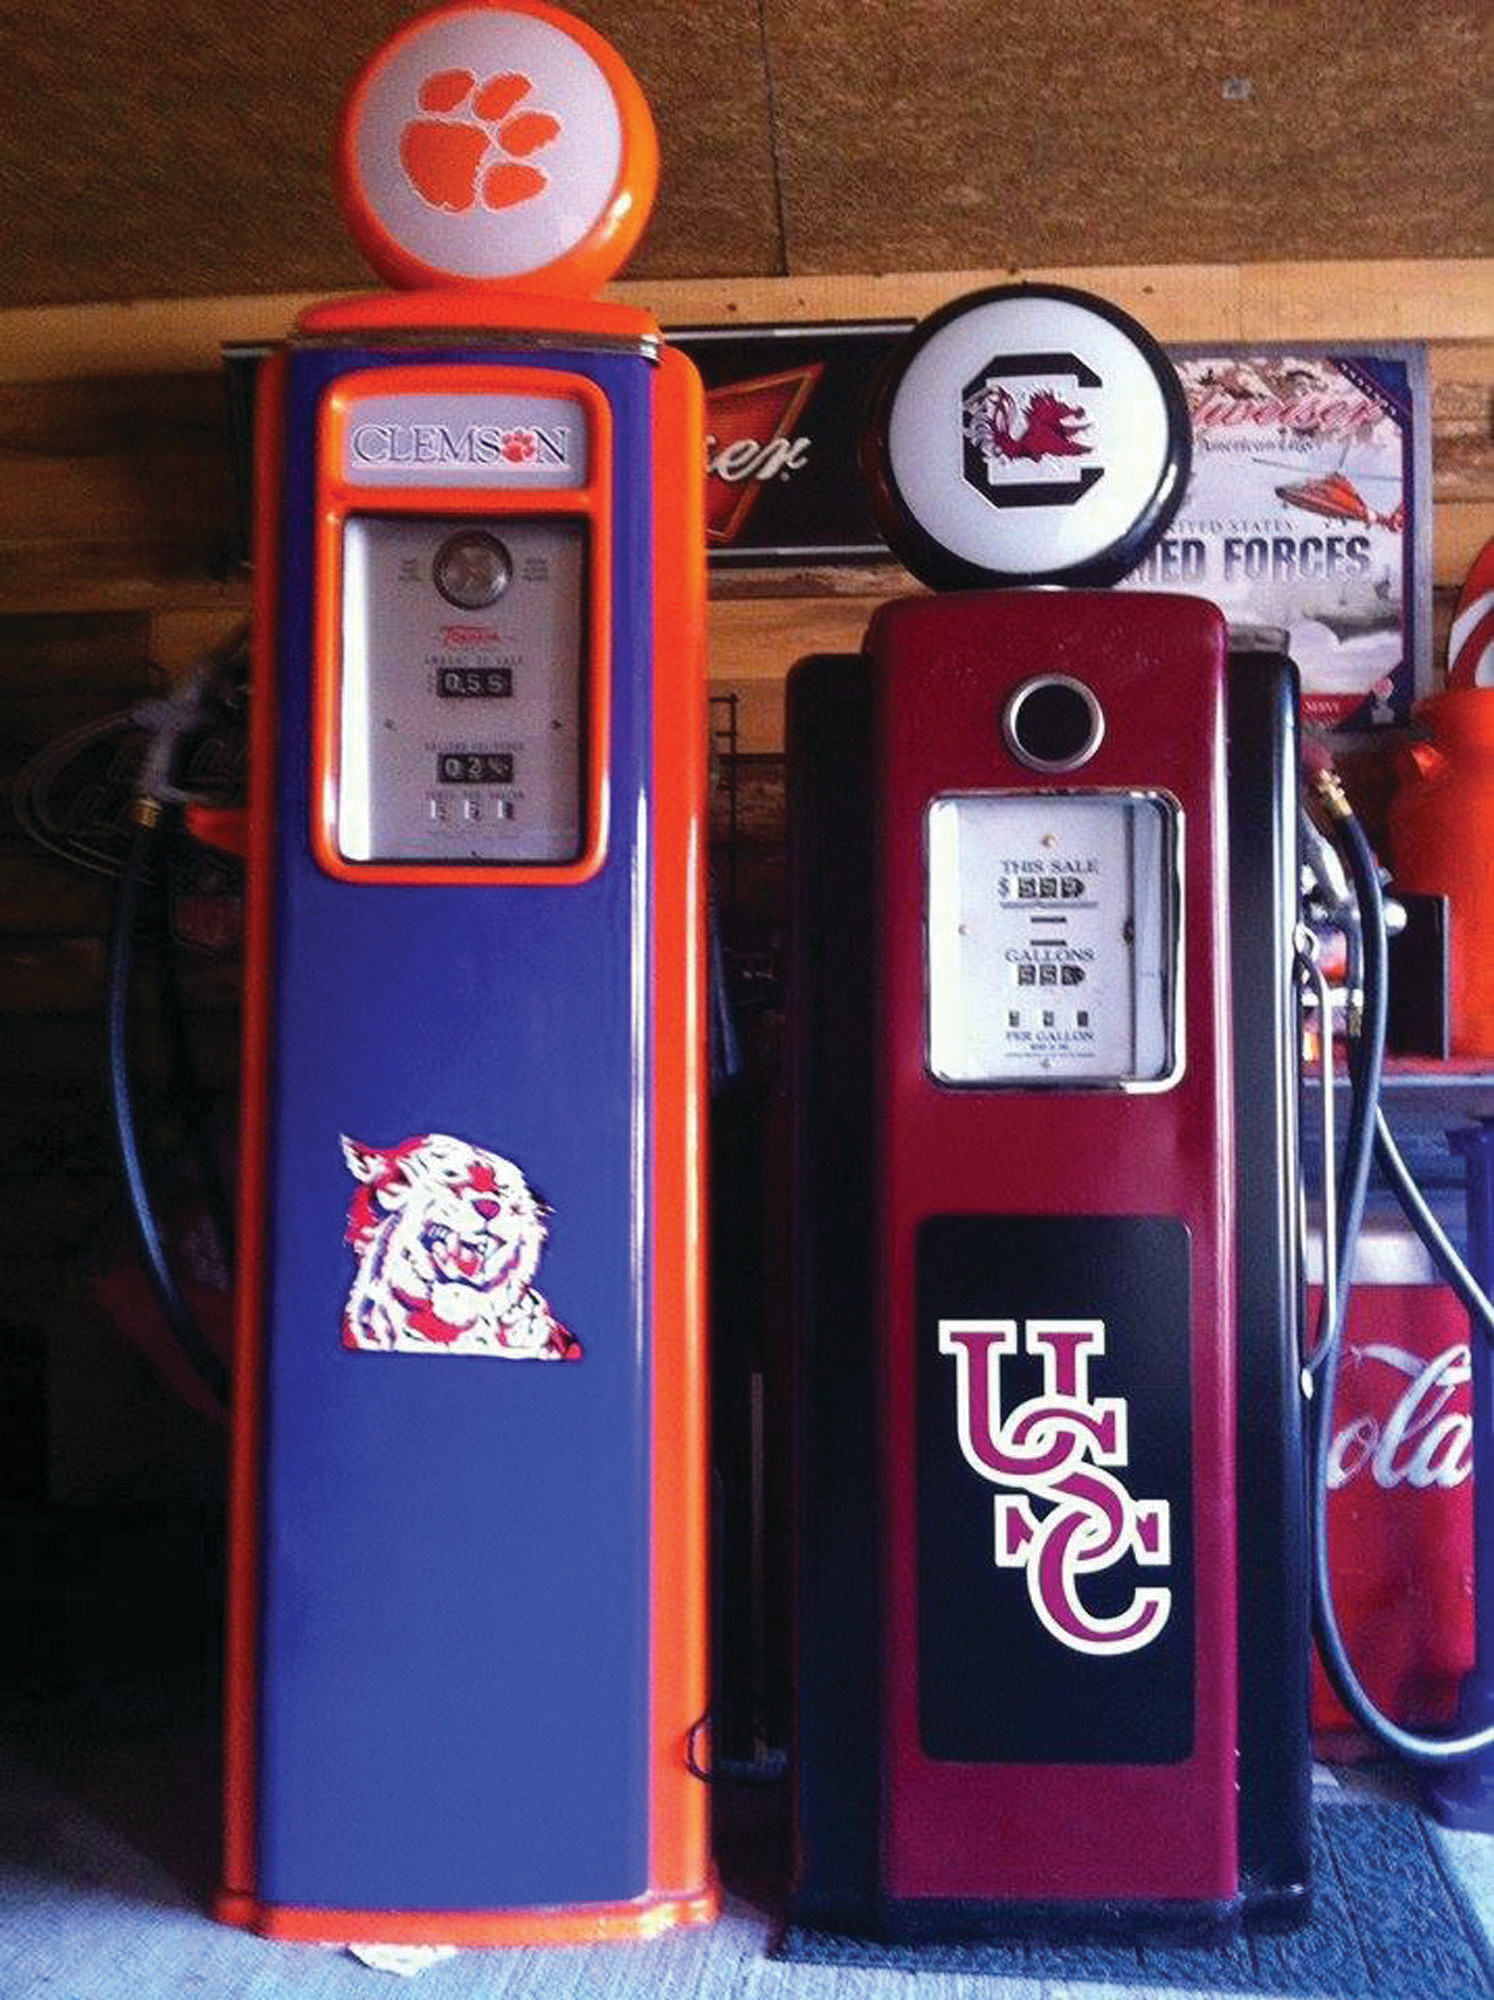 These vintage restored gas pumps (nonfunctional) are being raffled off to raise funds for Tripp Hussey, who is riding in the Alzheimer's Association A Ride to Remember bike ride. The University of South Carolina pump is a Wayne 70 and is 78 inches tall. The Clemson pump is a Tocheim 39 and is 92 inches tall. Tickets are one for $20 or six for $100. The drawing will be held on June 1 at Mariachi's in Manning. You need not be present to win. The winner chooses either pump. All proceeds go to the Alzheimer's Association. Call or text (803) 473-0283 for additional information.